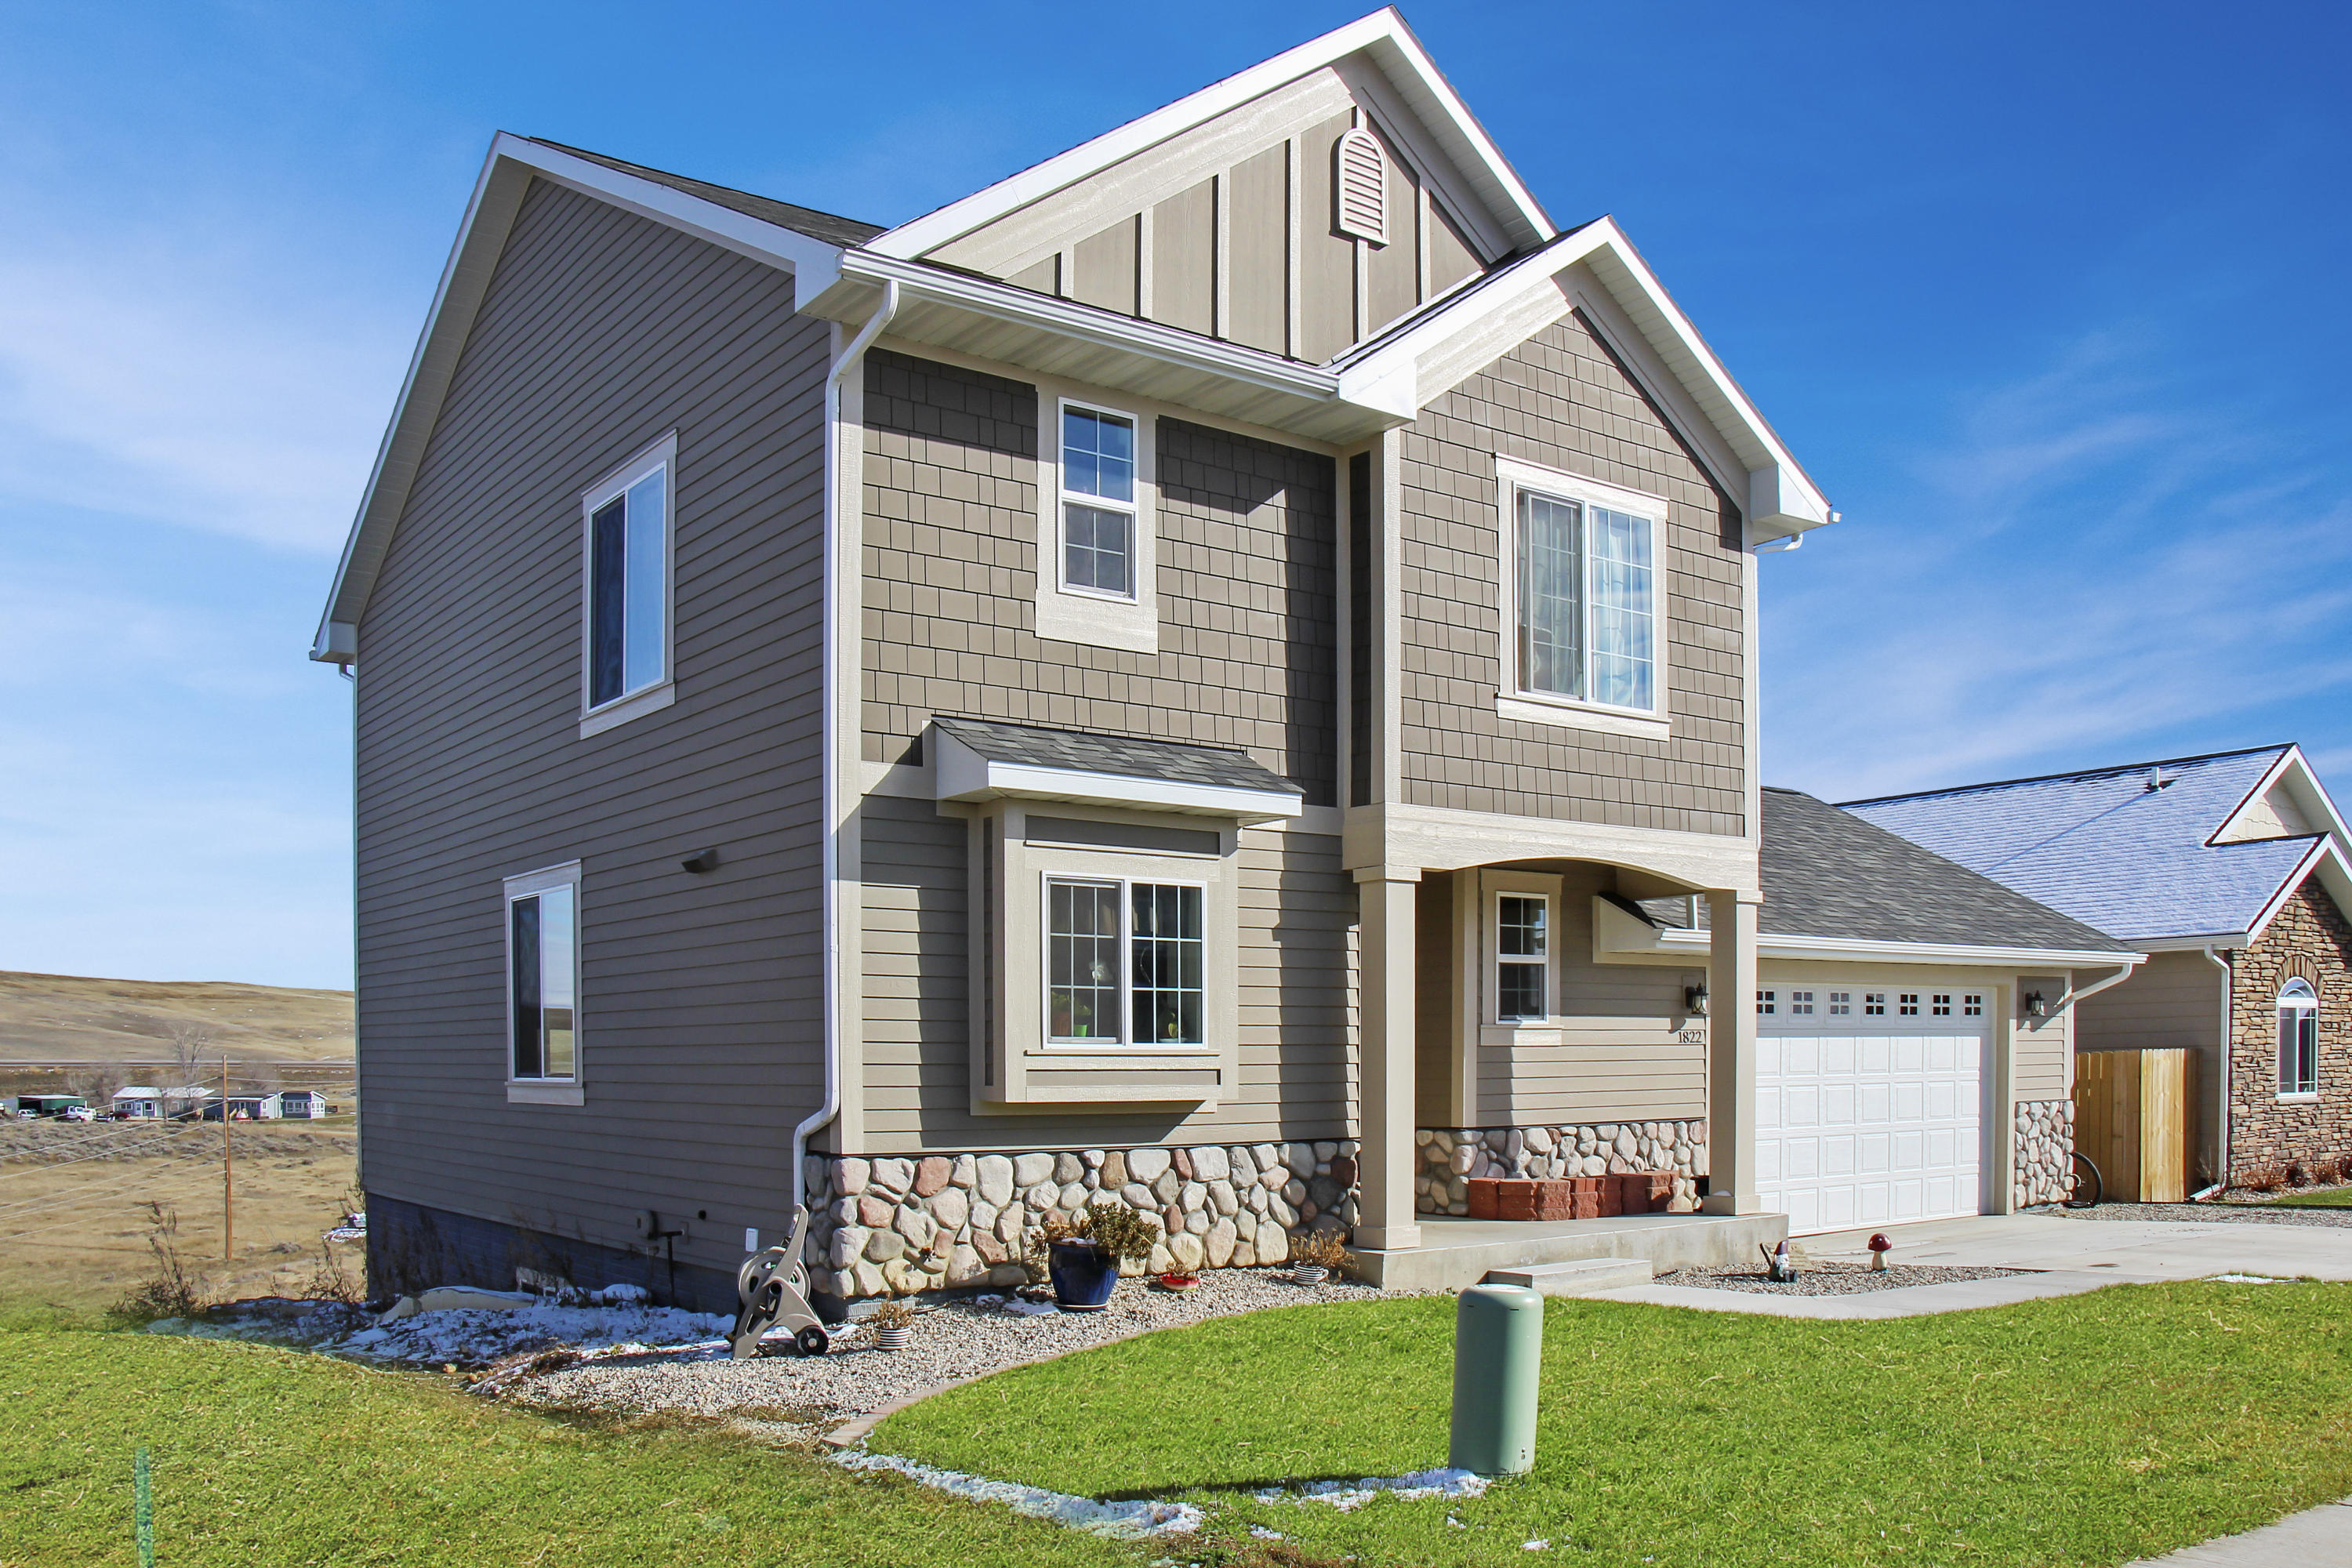 1822 Lookout Point Drive, Sheridan, Wyoming 82801, 4 Bedrooms Bedrooms, ,3.5 BathroomsBathrooms,Residential,For Sale,Lookout Point,18-1186